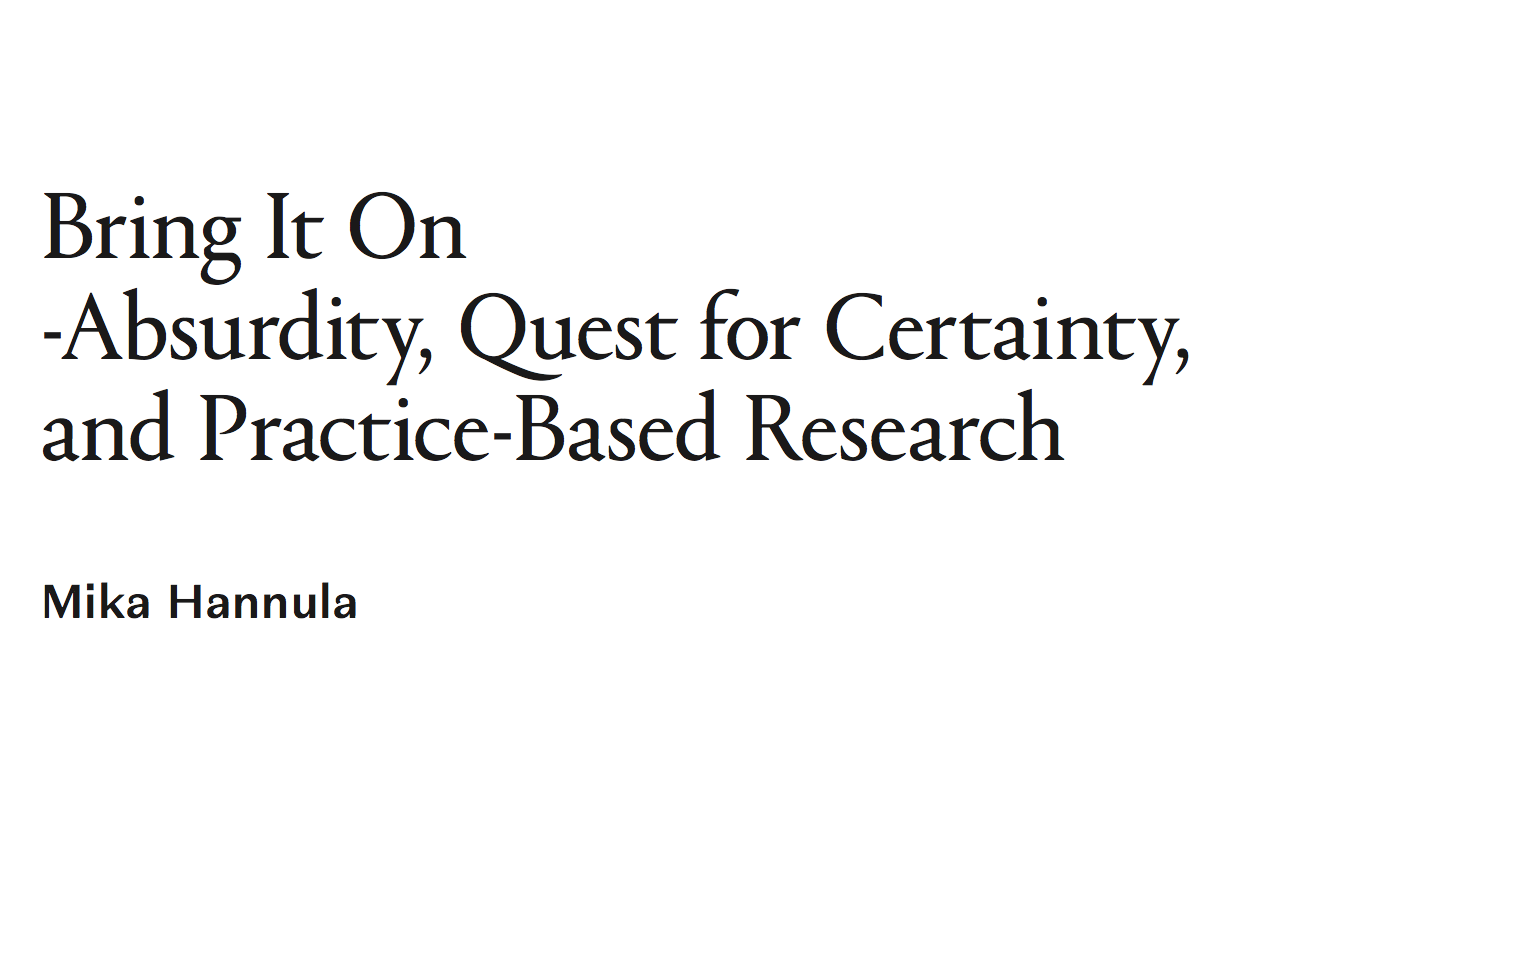 Bring It On -Absurdity, Quest for Certainty, and Practice-Based Research